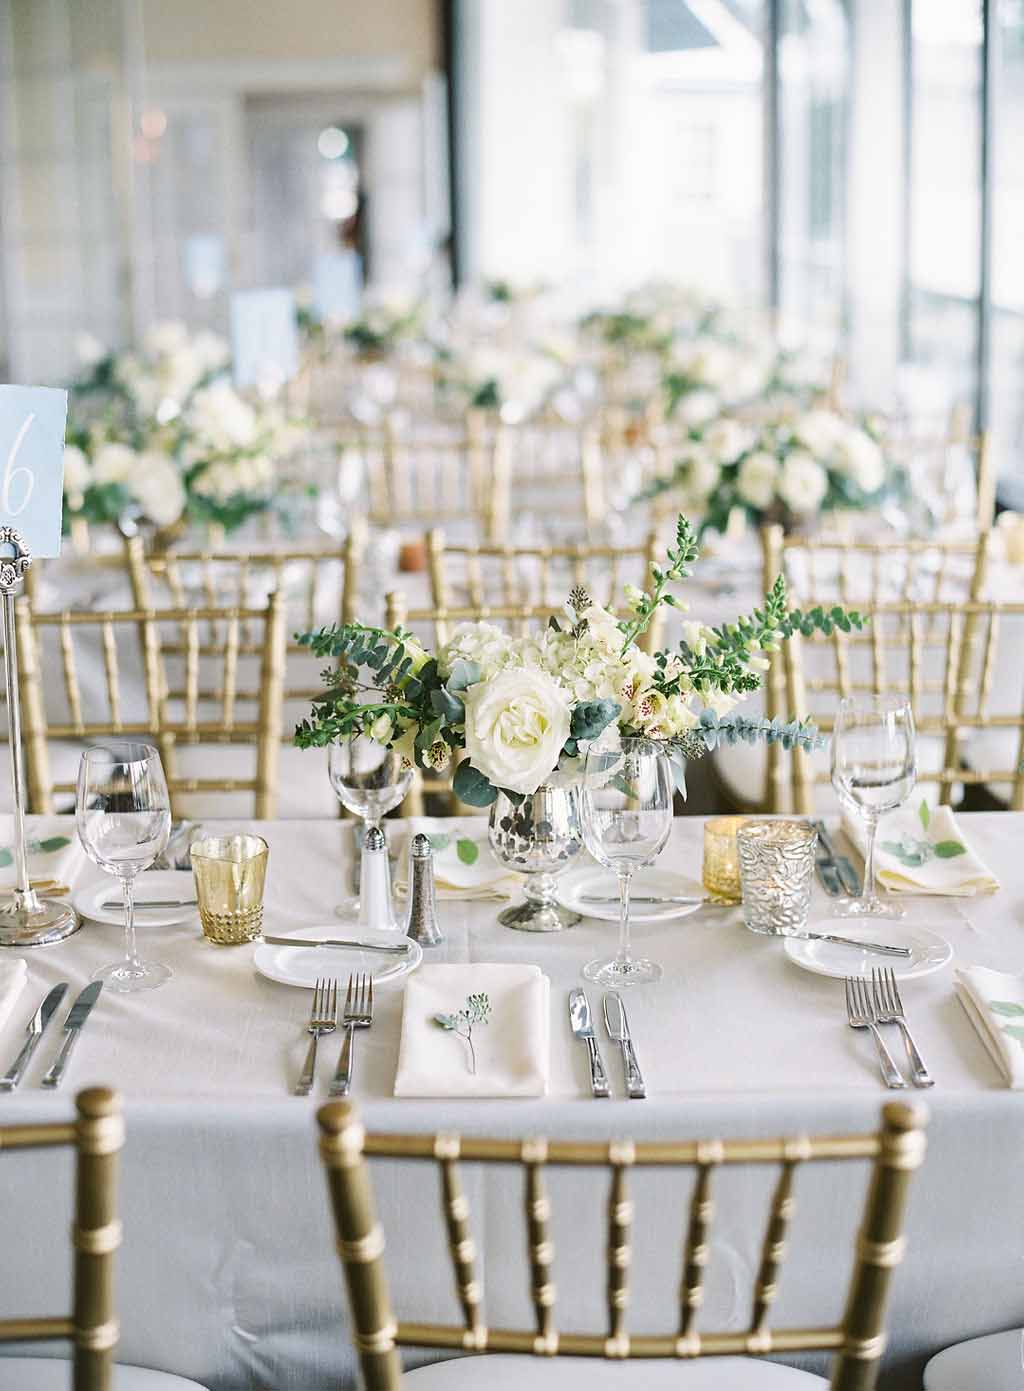 long tables at the reception of a seattle tennis club wedding decorated with white linens and compote arrangements